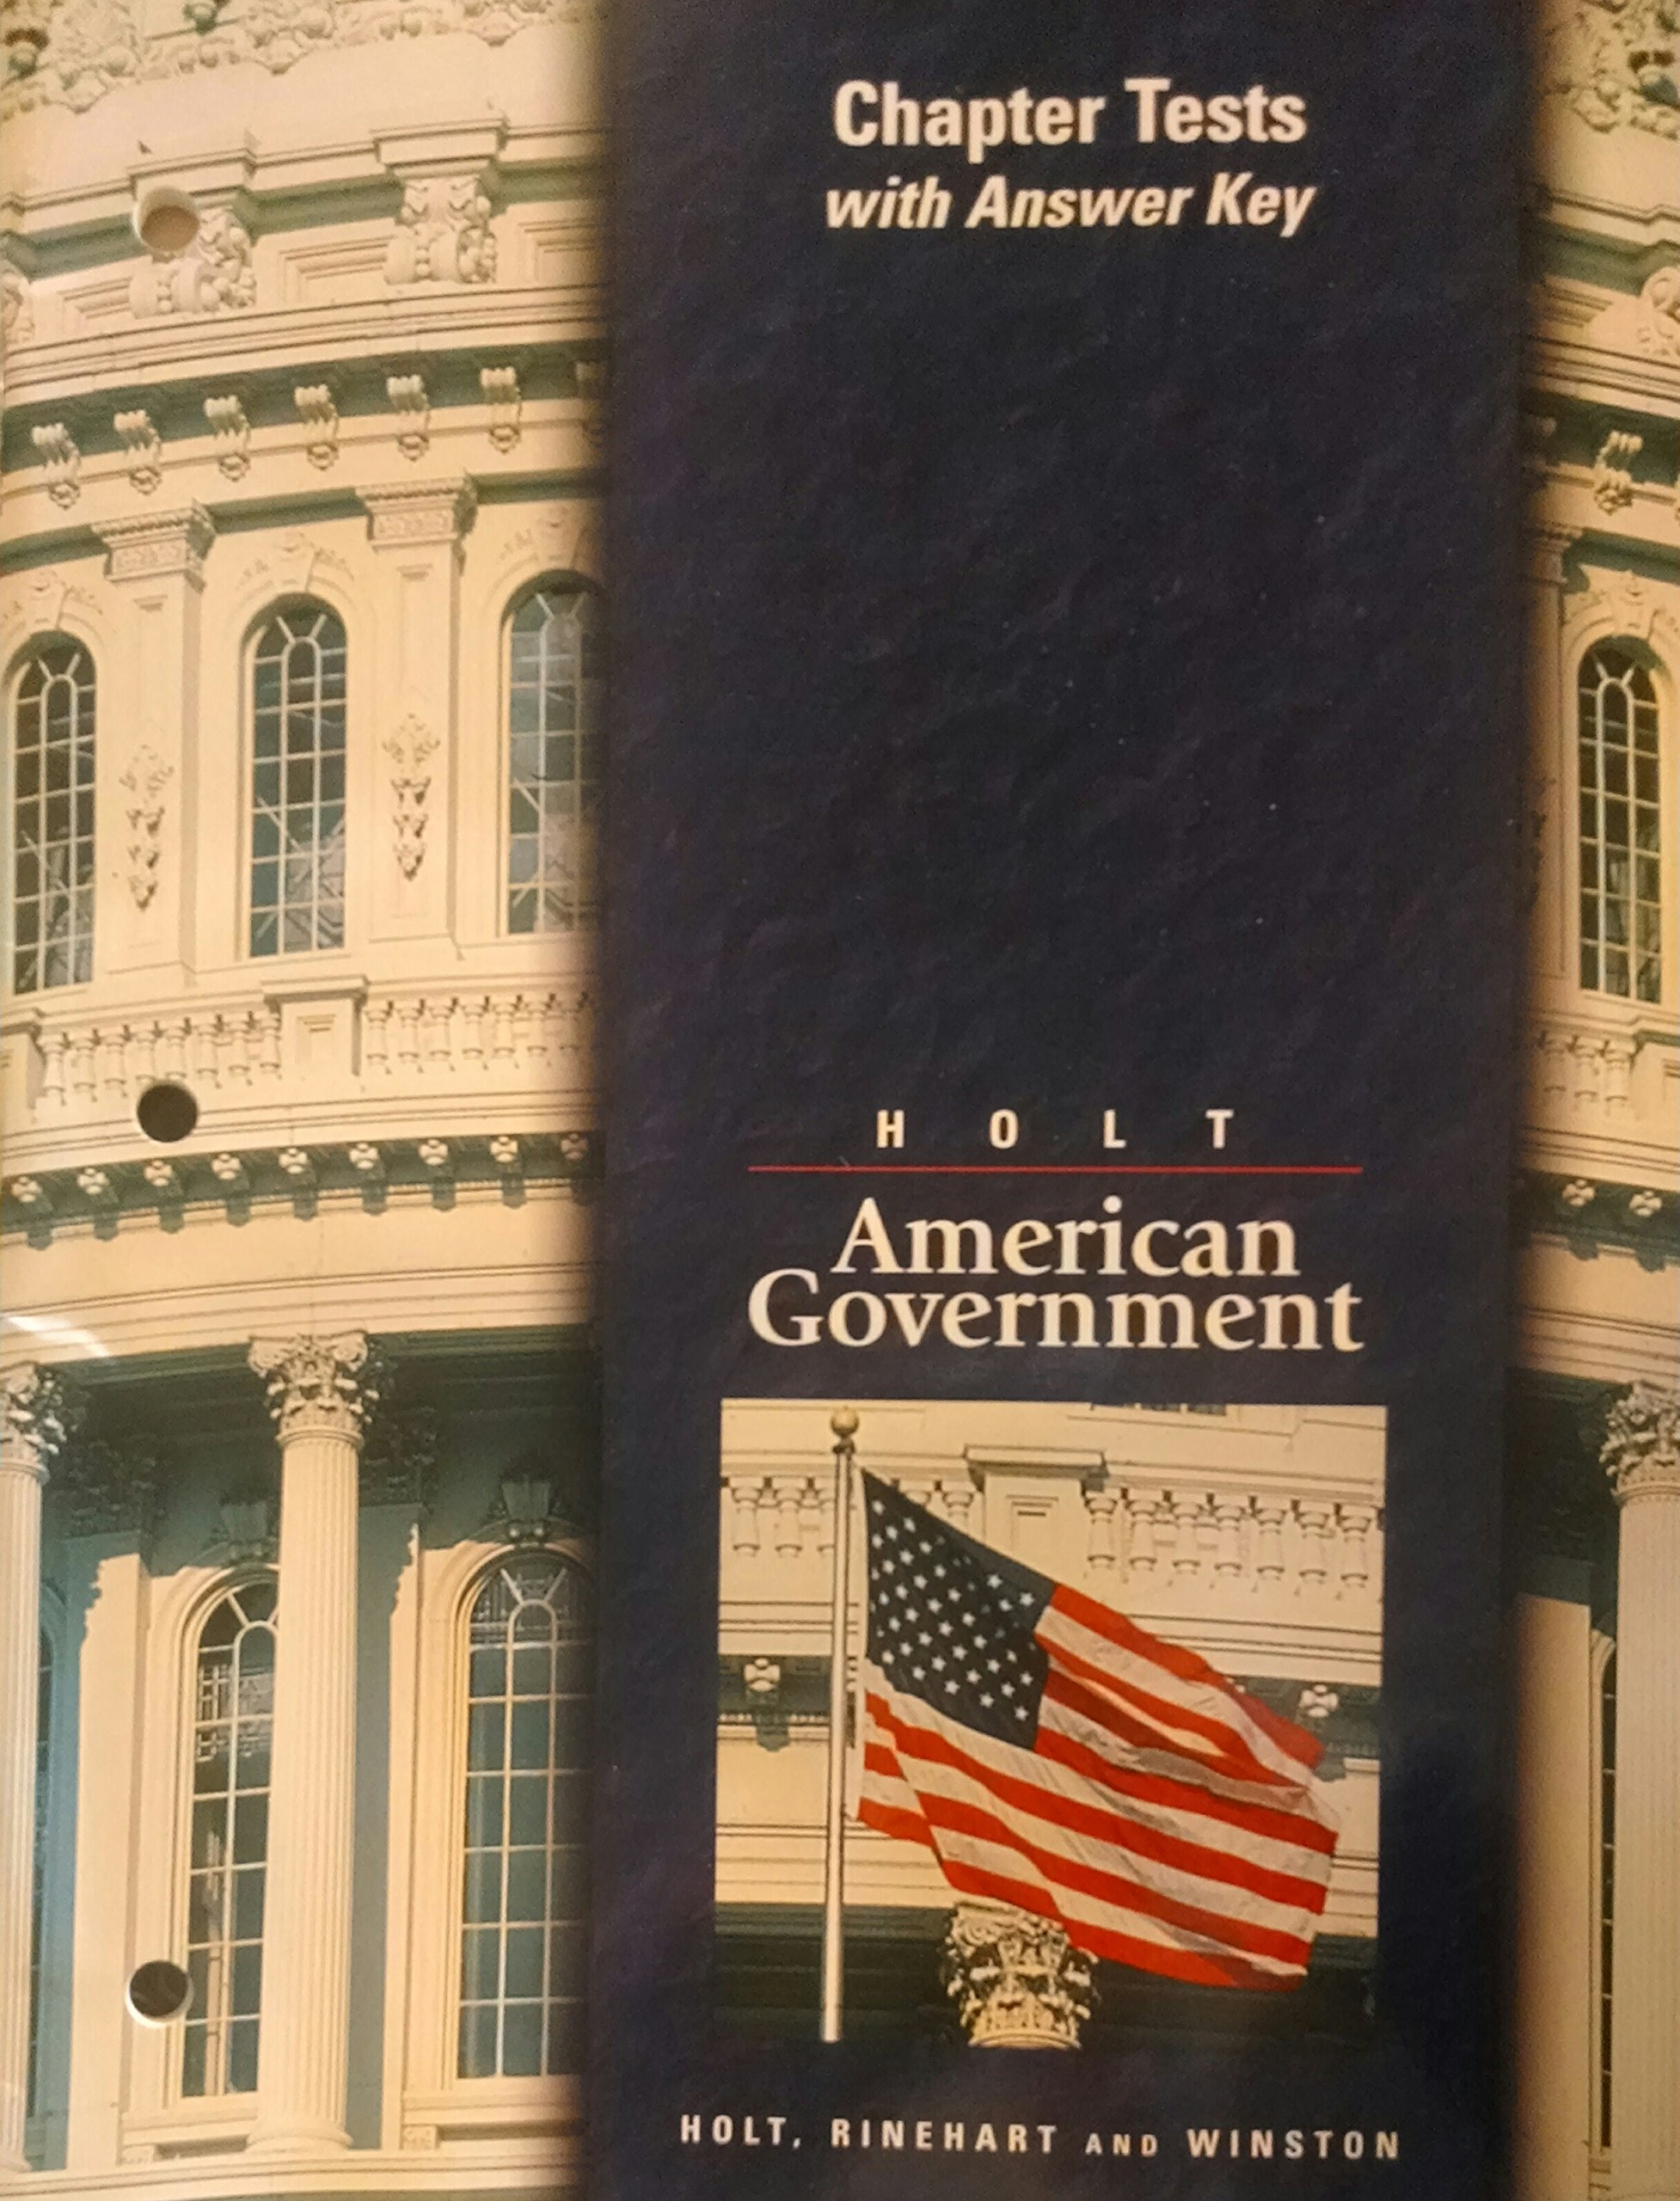 Chapter tests with answer key holt american government holt chapter tests with answer key holt american government holt 9780030516122 amazon books fandeluxe Images